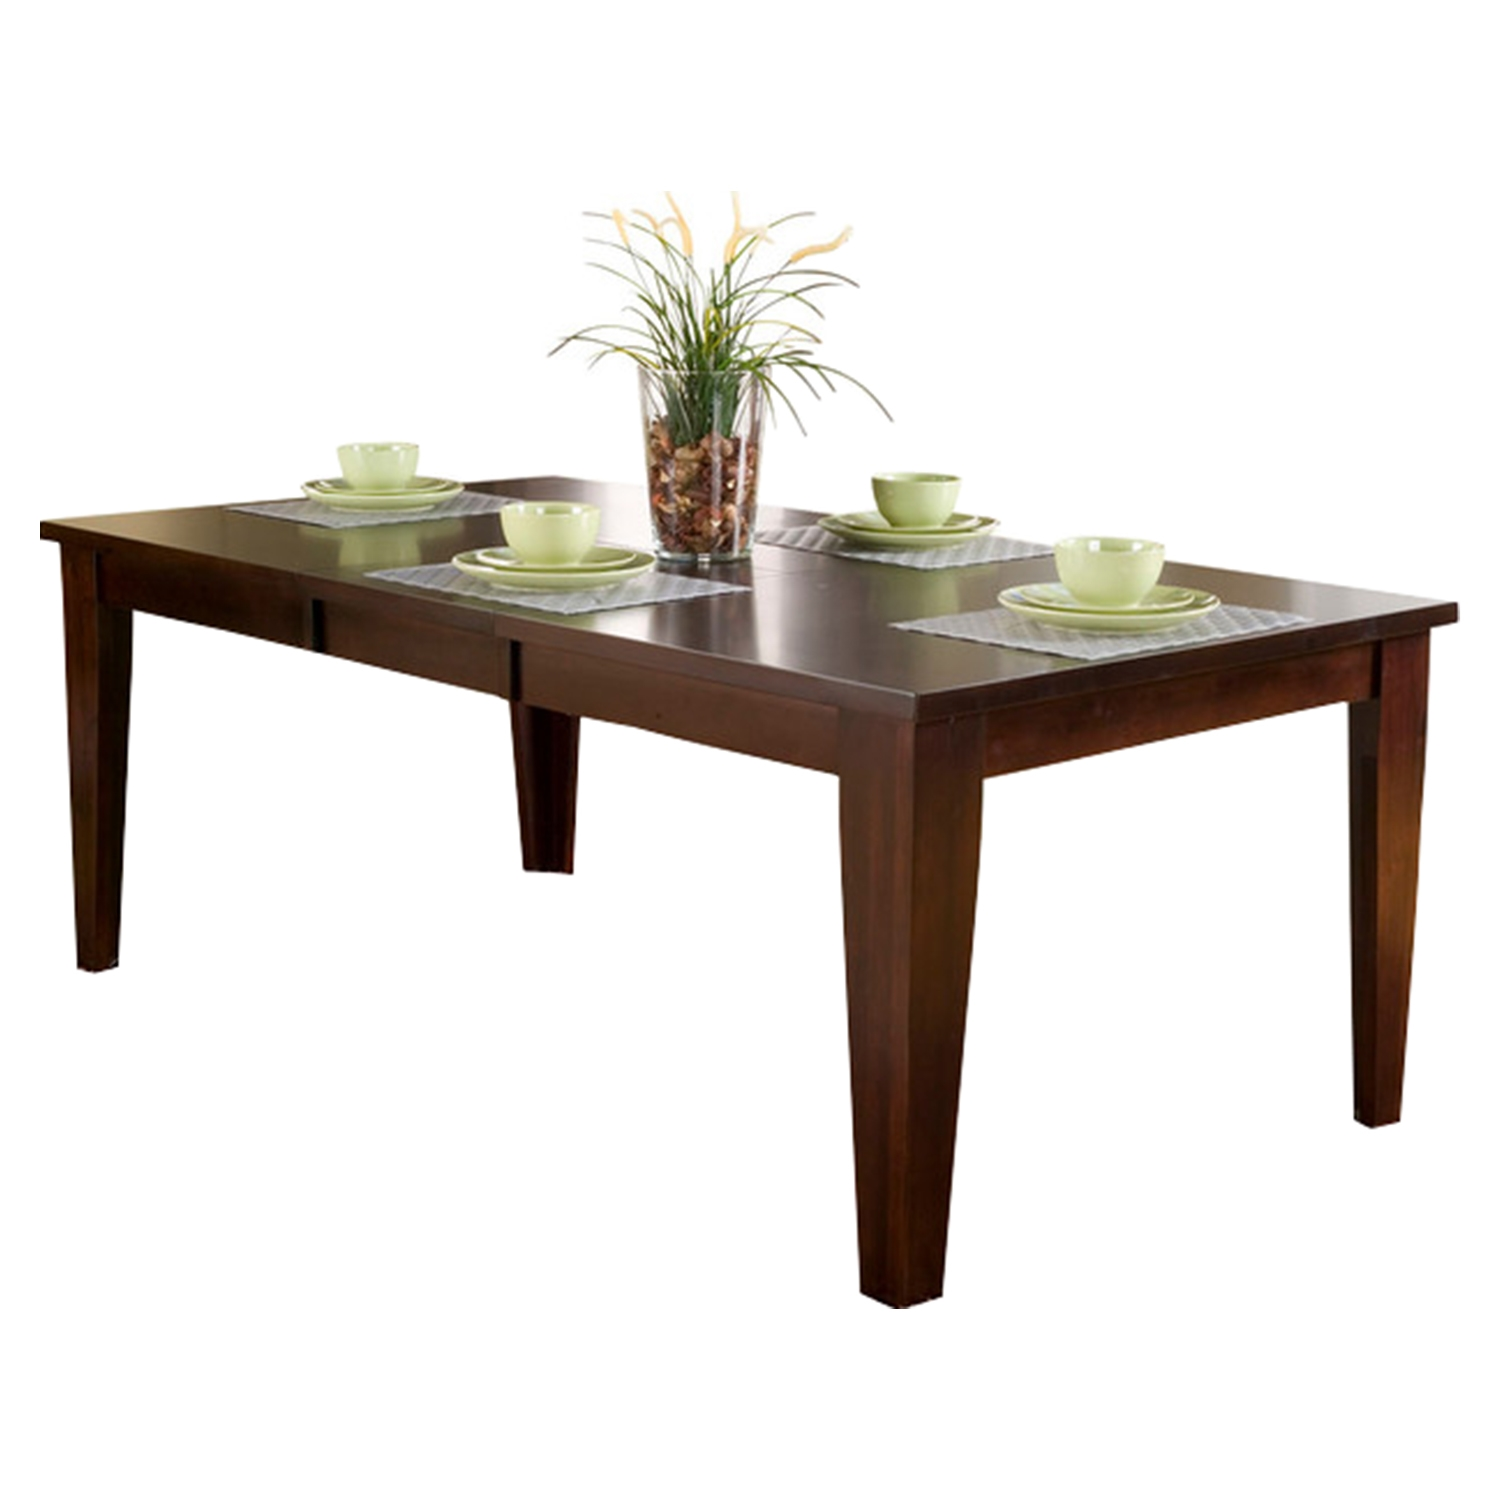 Havenhurst Extension Dining Table - Merlot, Butterfly Leaf - ALP-8932-01